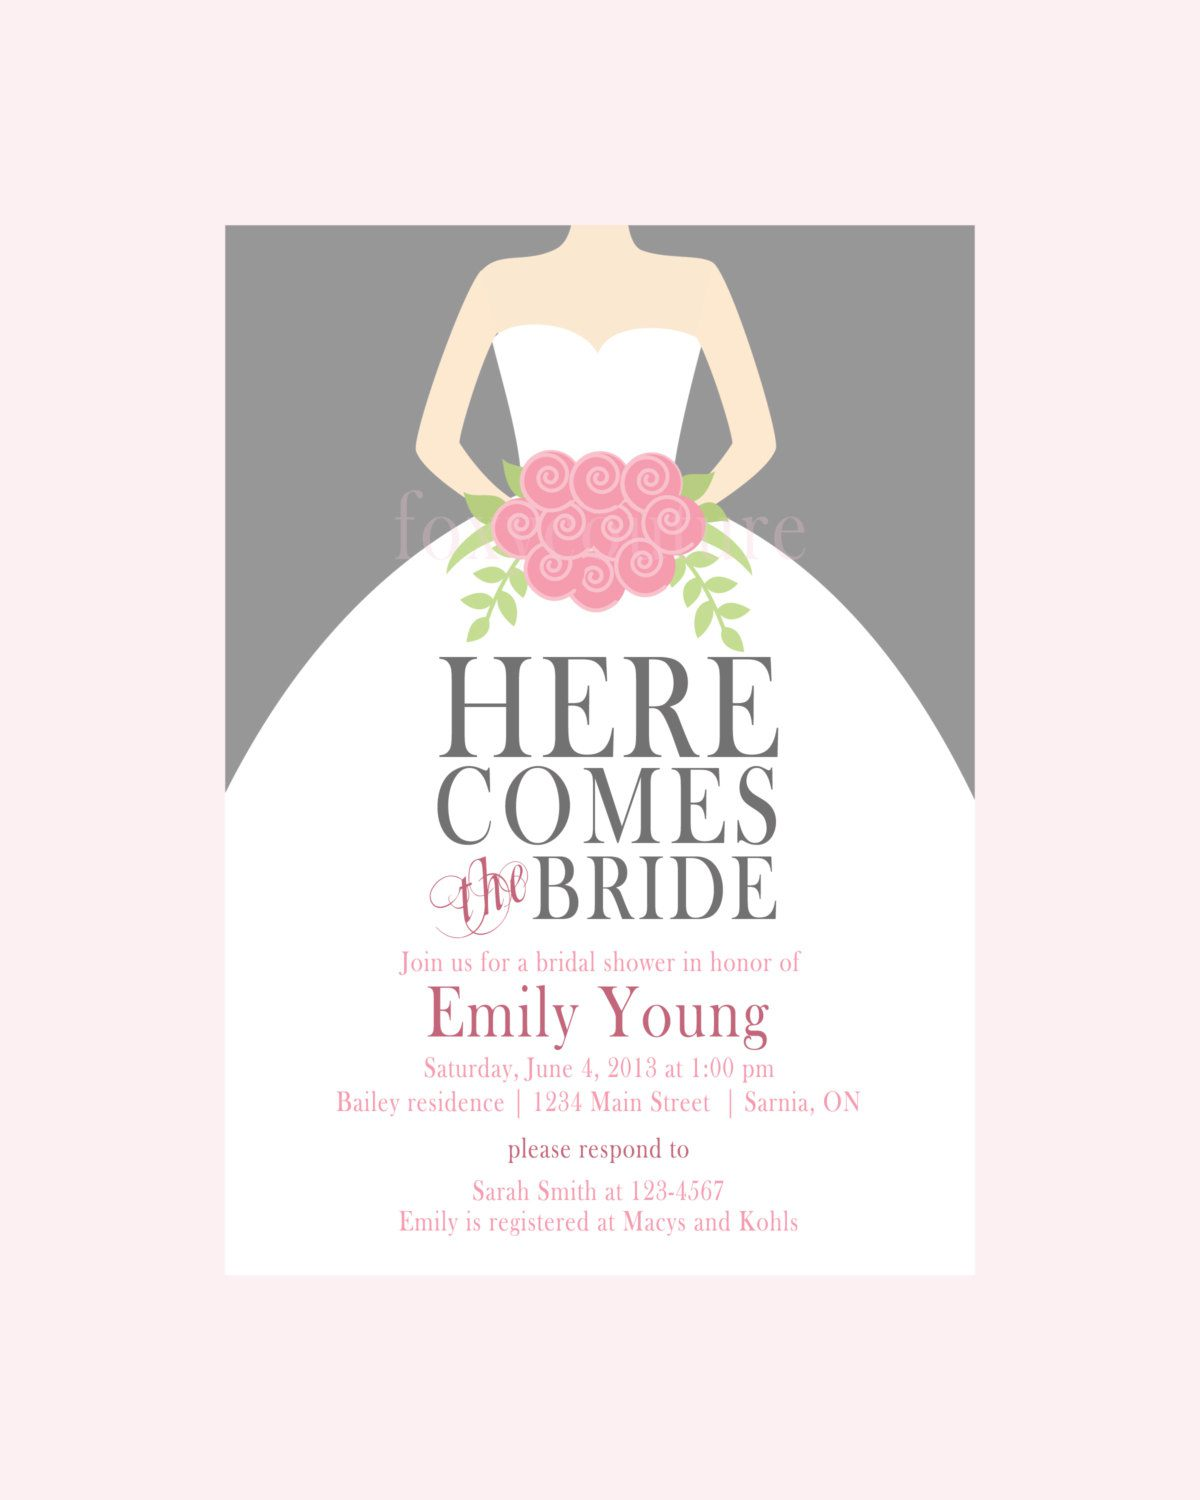 Bridal shower invitation clip art